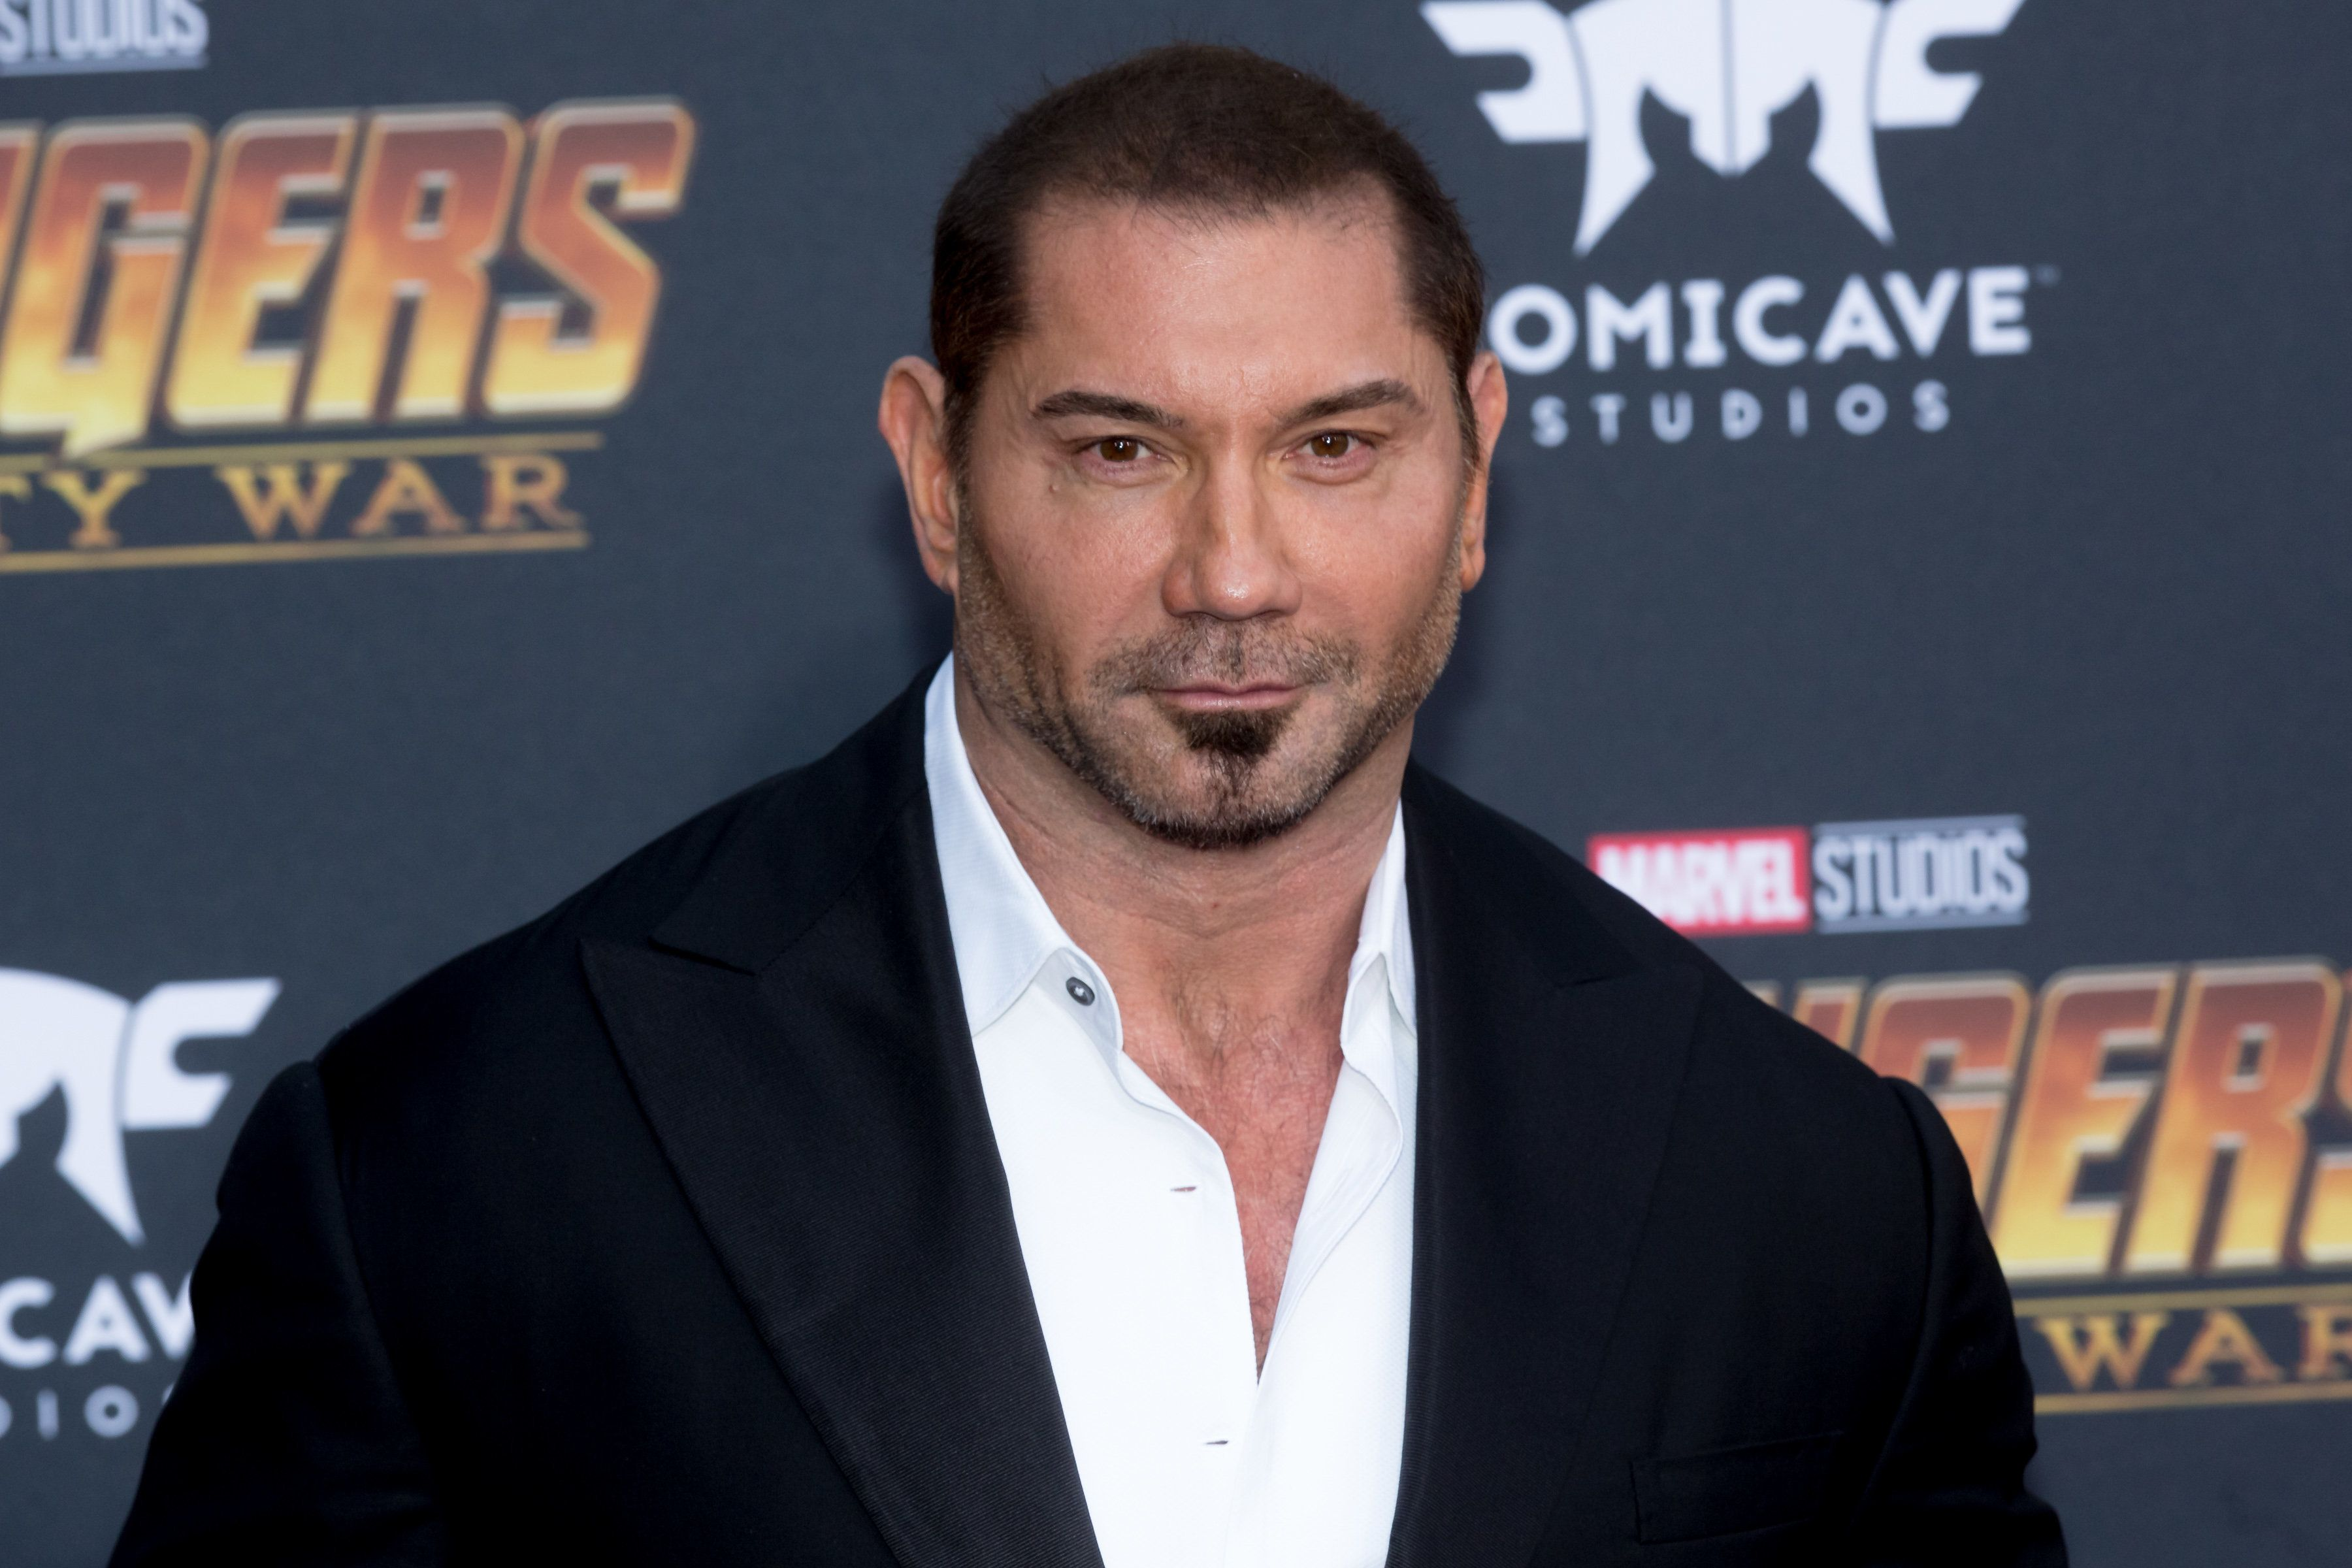 Dave Bautista rips Disney for firing James Gunn